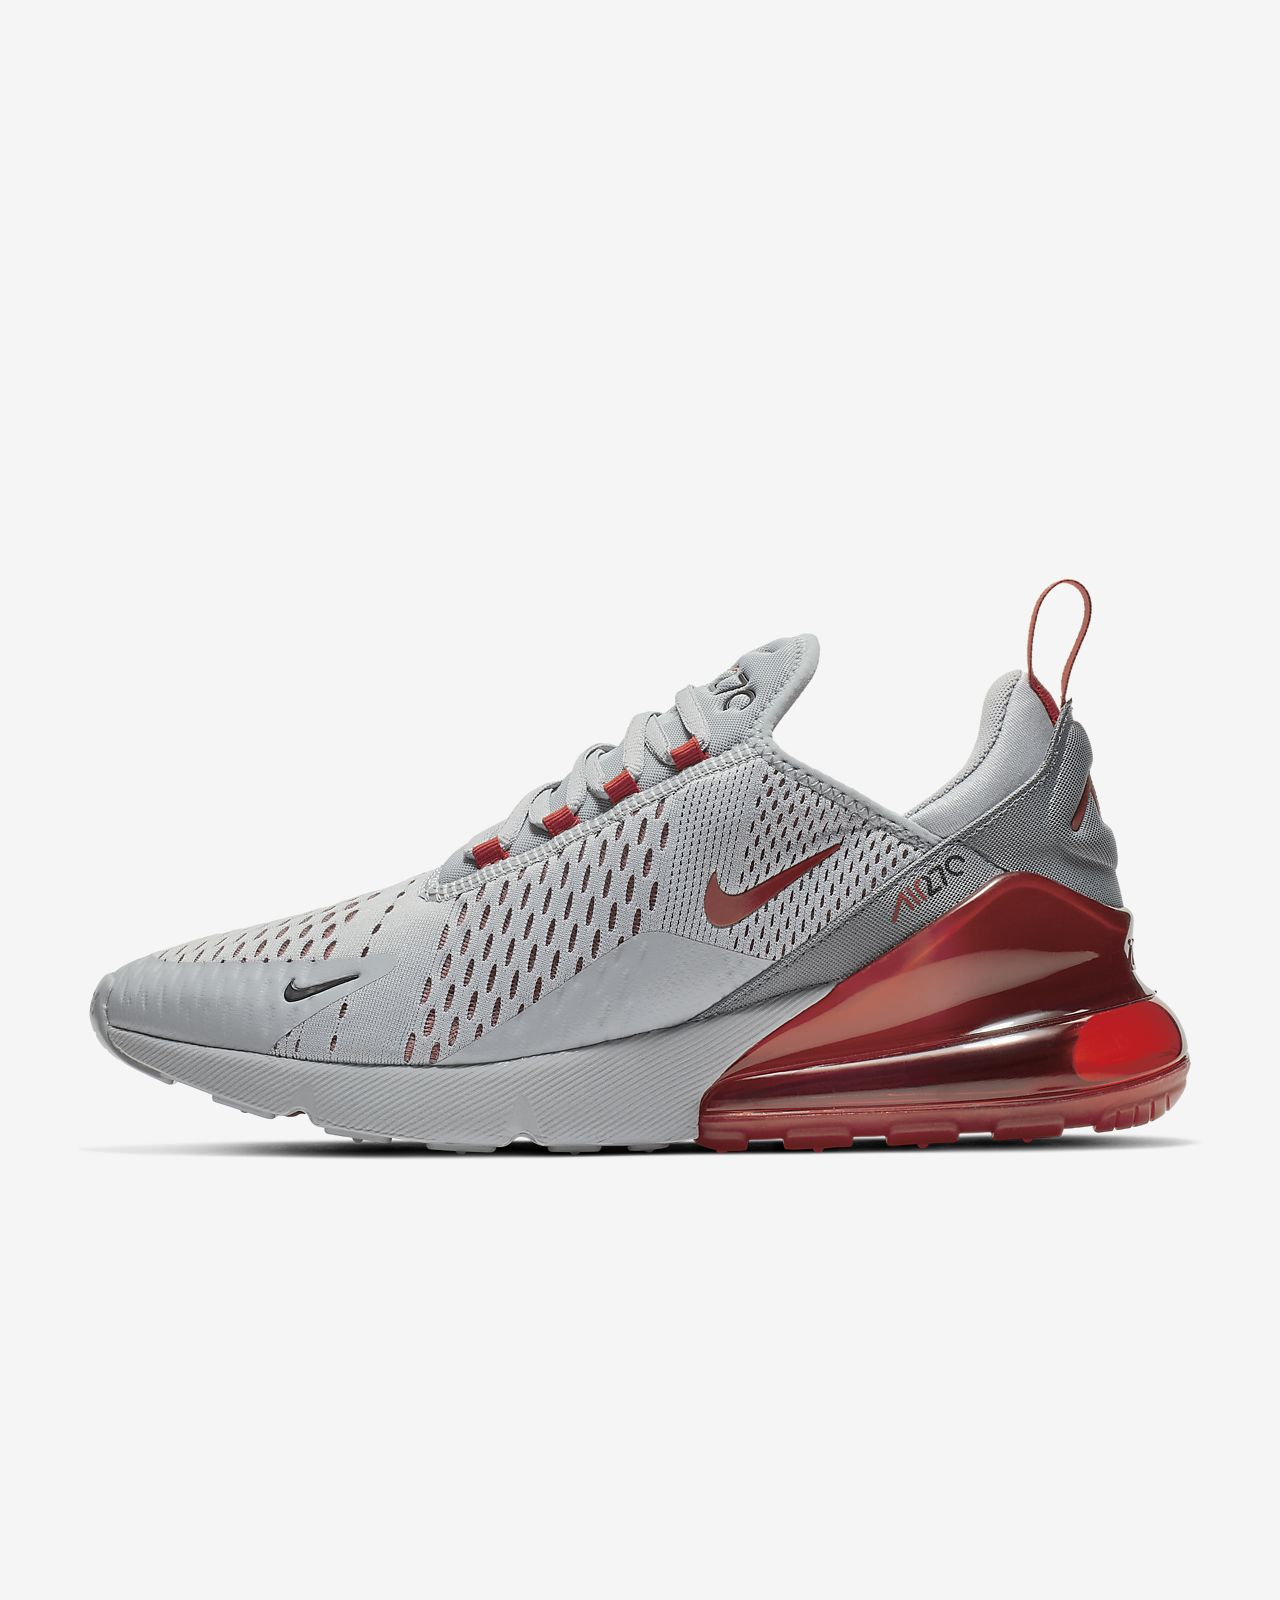 meet d701f 60af5 Men s Shoe. Nike Air Max 270